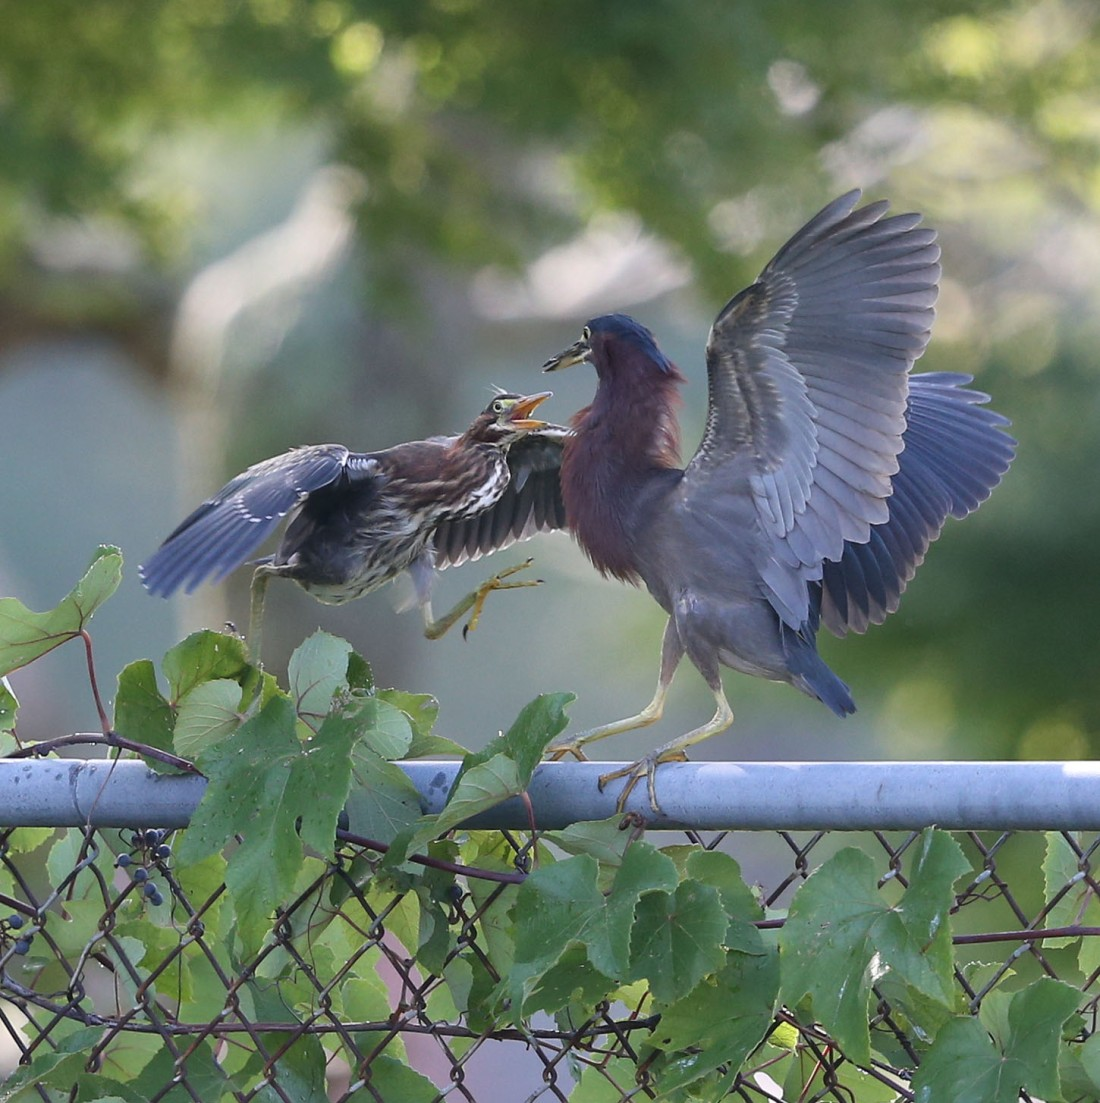 Juvenile Green Heron charging its parent